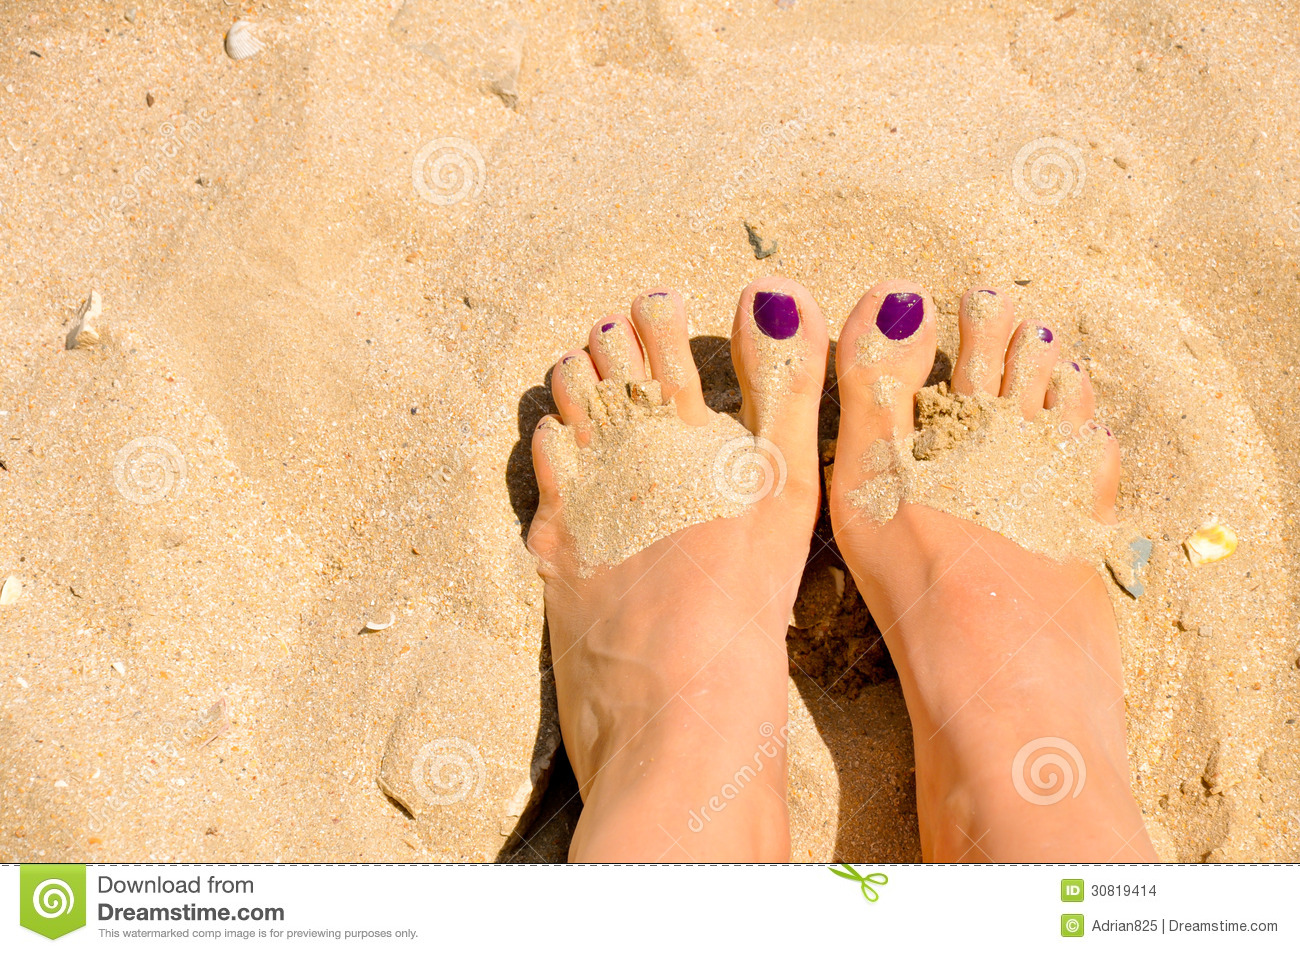 Woman Feet In Sand Stock Images - Image: 30819414